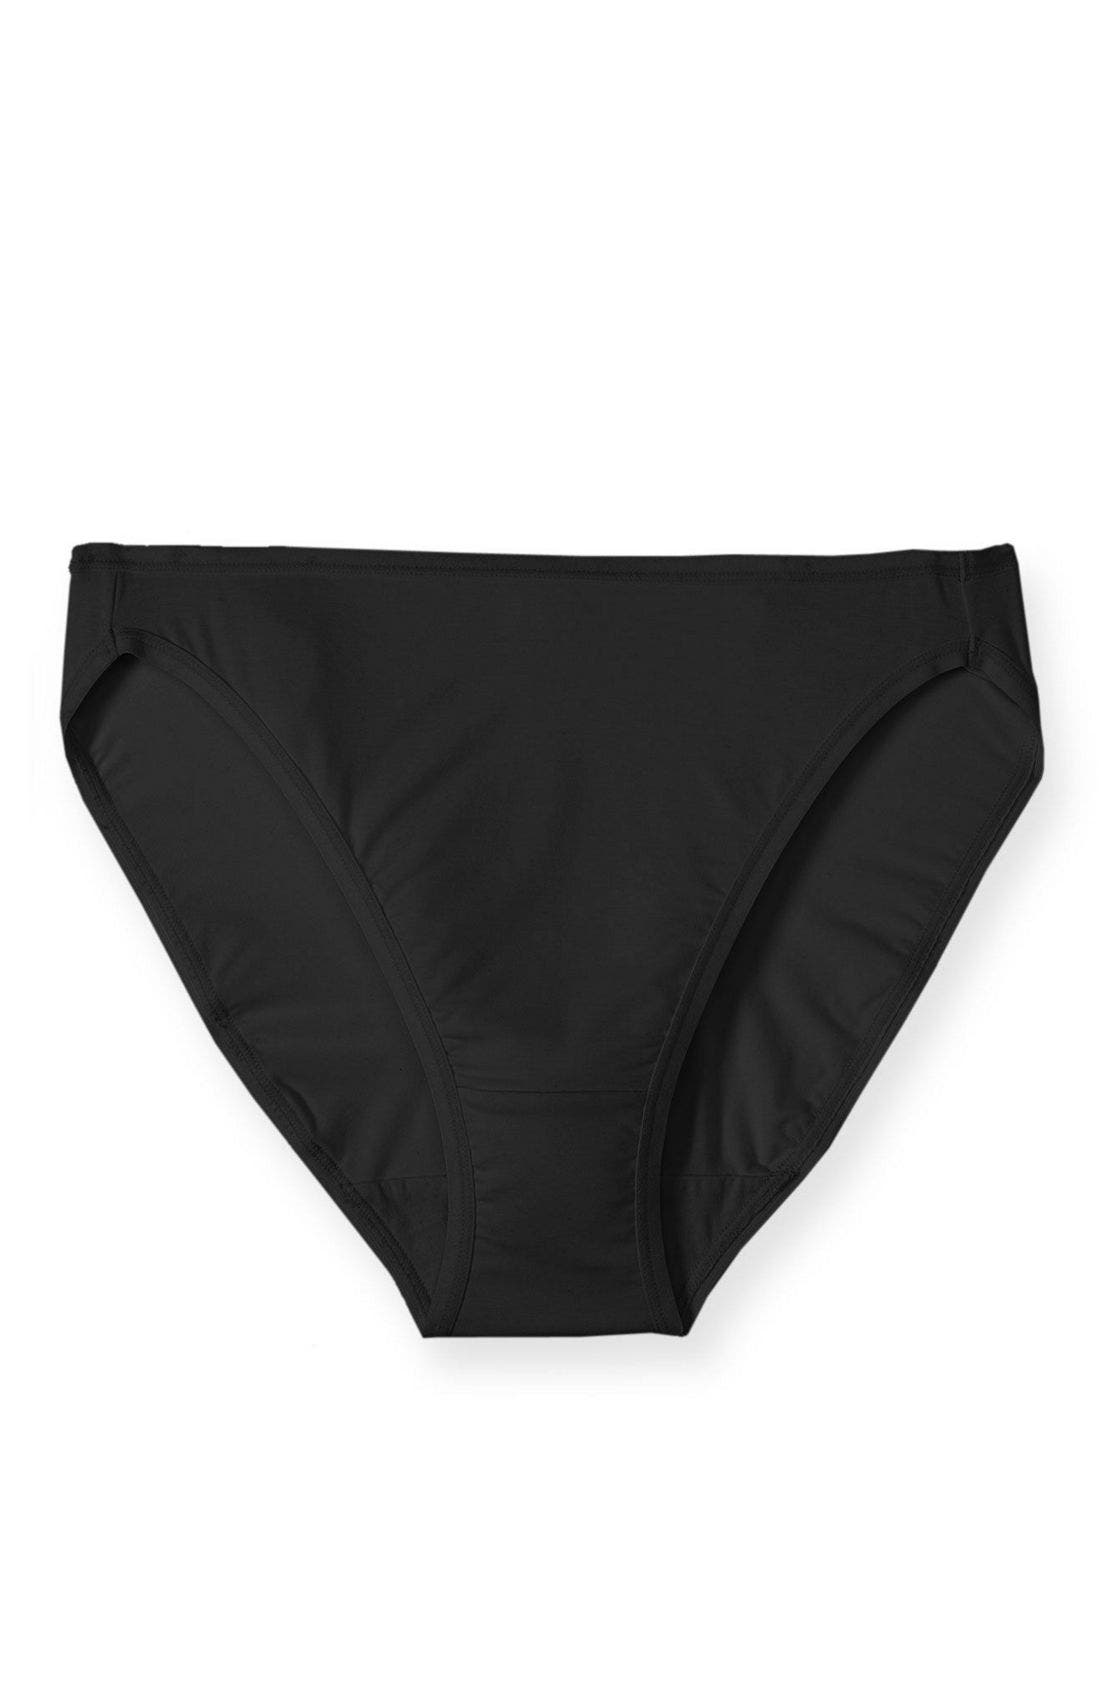 Alternate Image 2  - Felina 'Sublime' High Cut Briefs (3 for $33)